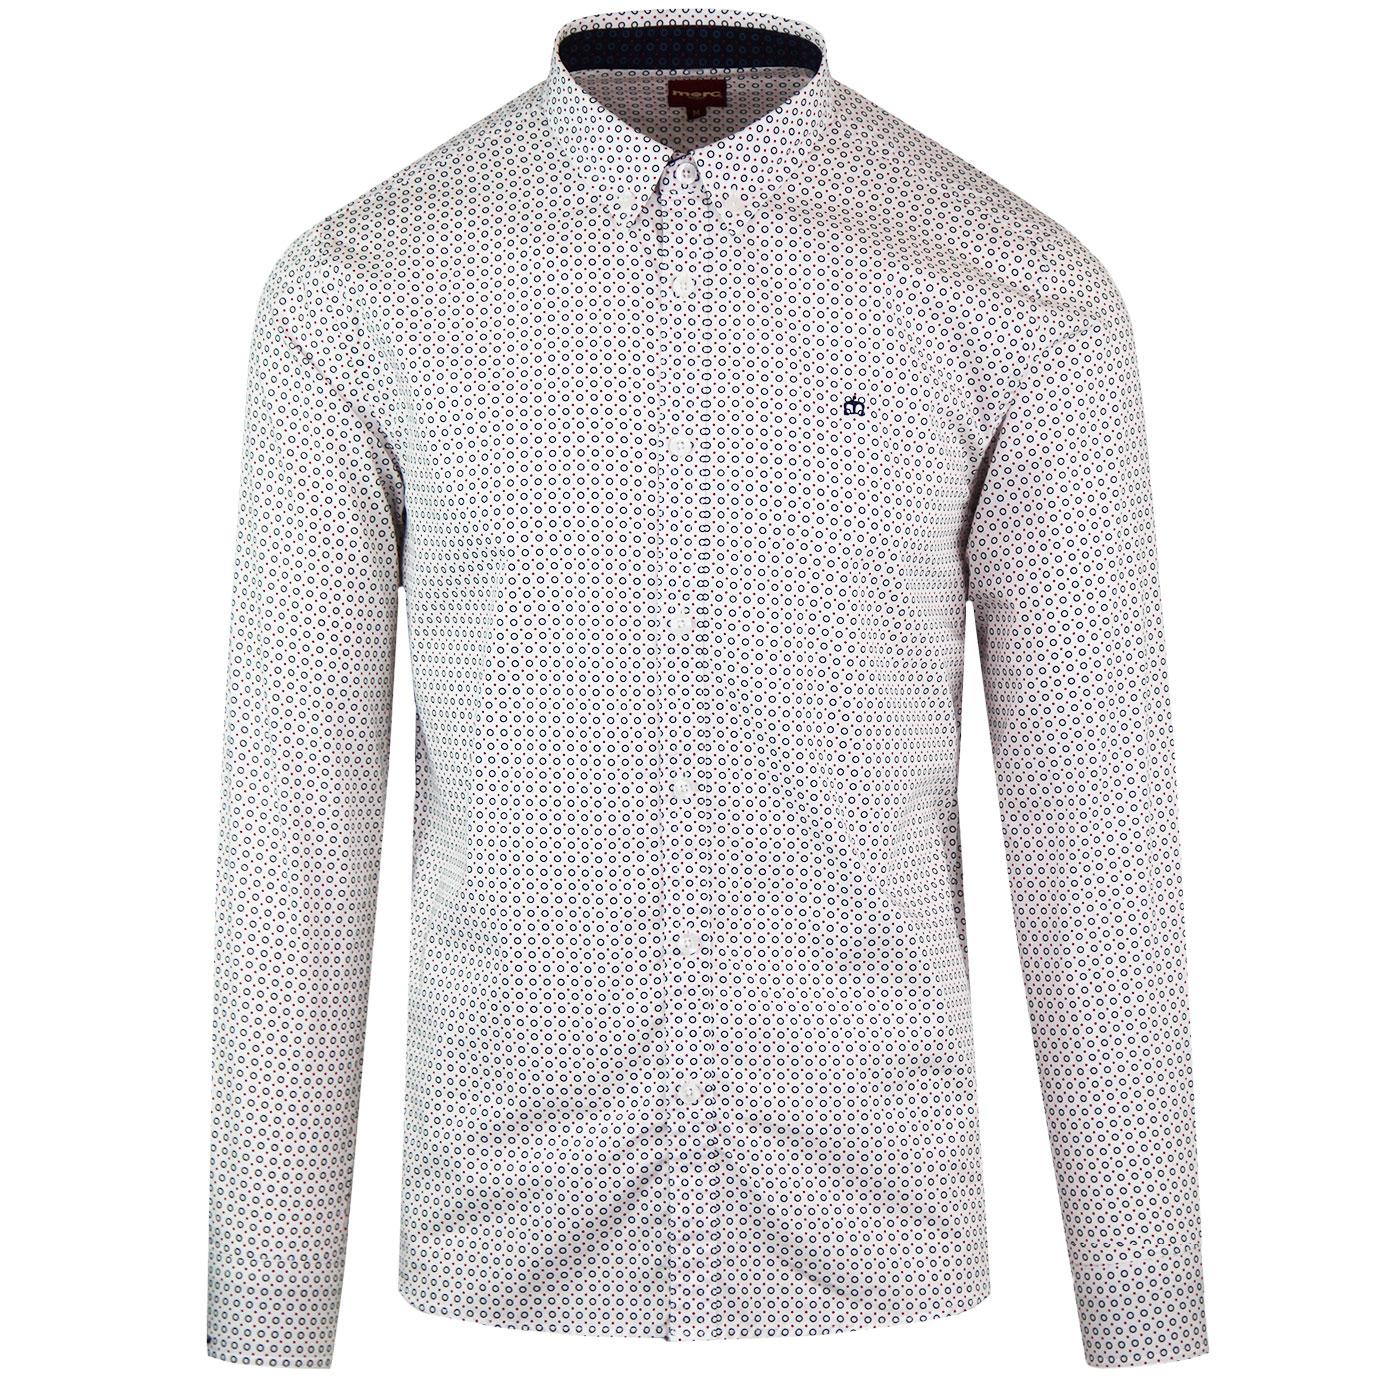 Squire MERC Retro Mod Geo Circle Print Shirt White